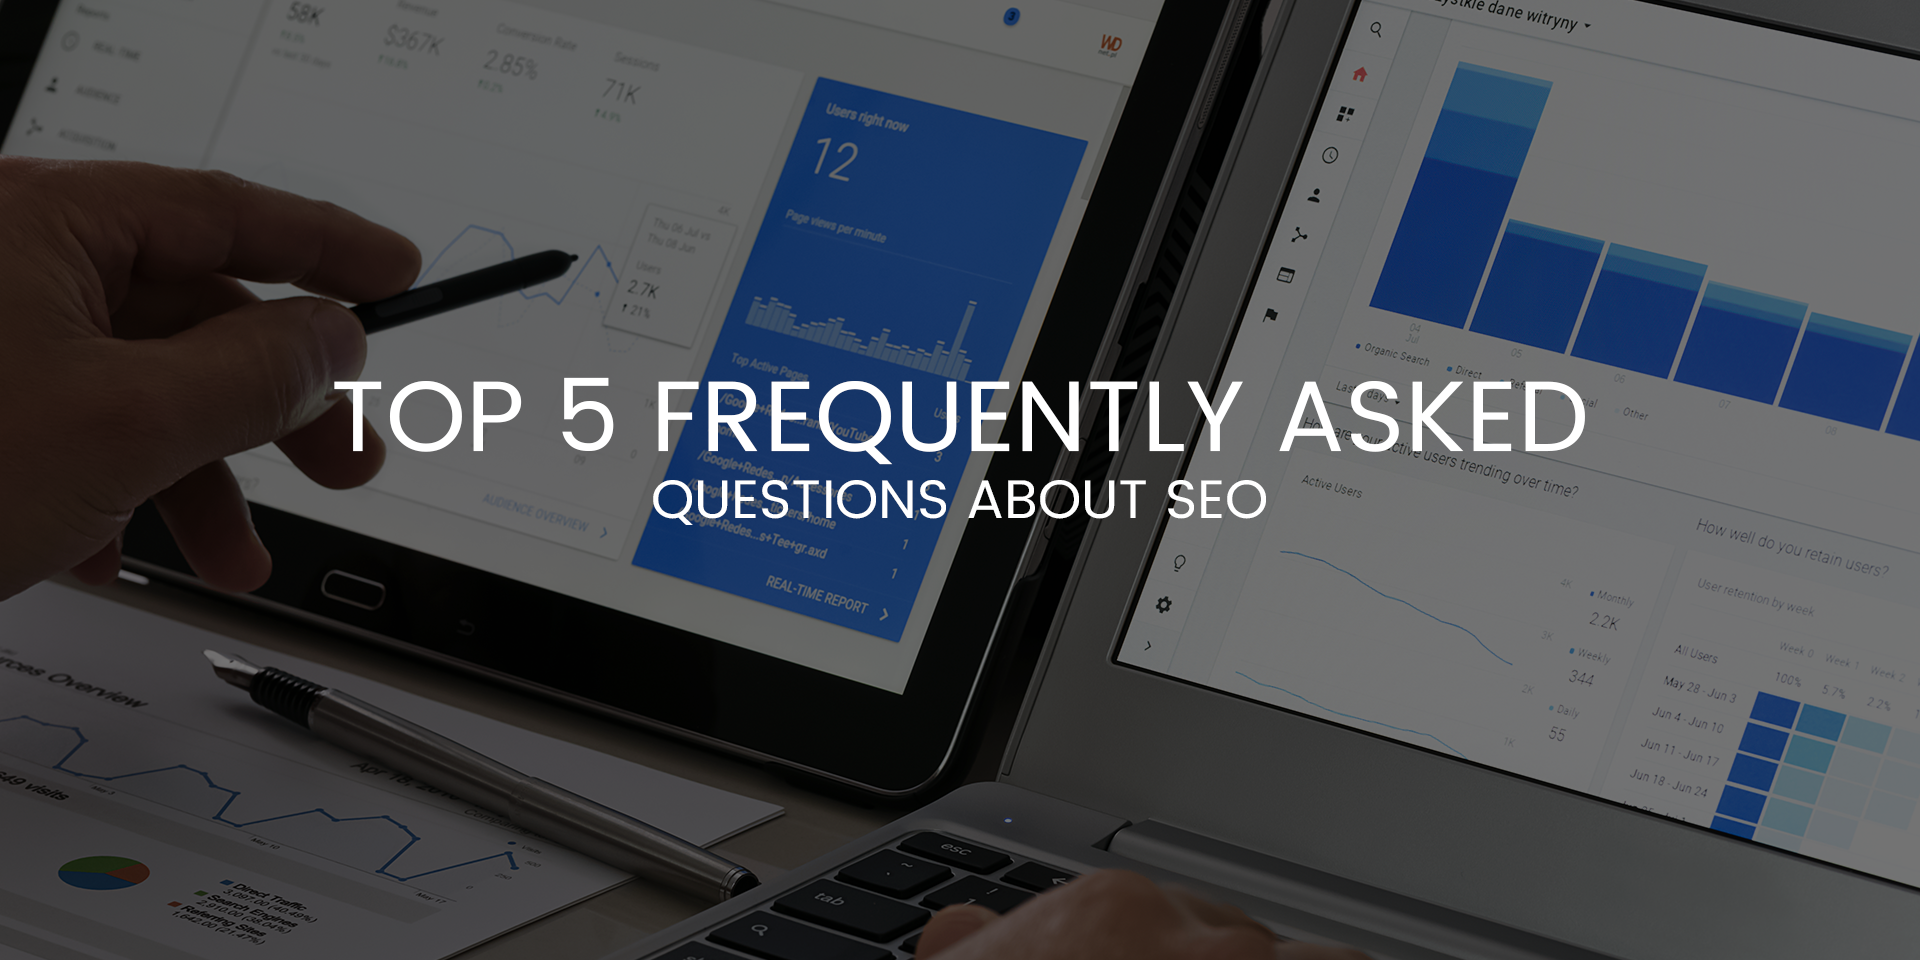 Top 5 Frequently Asked Questions About SEO